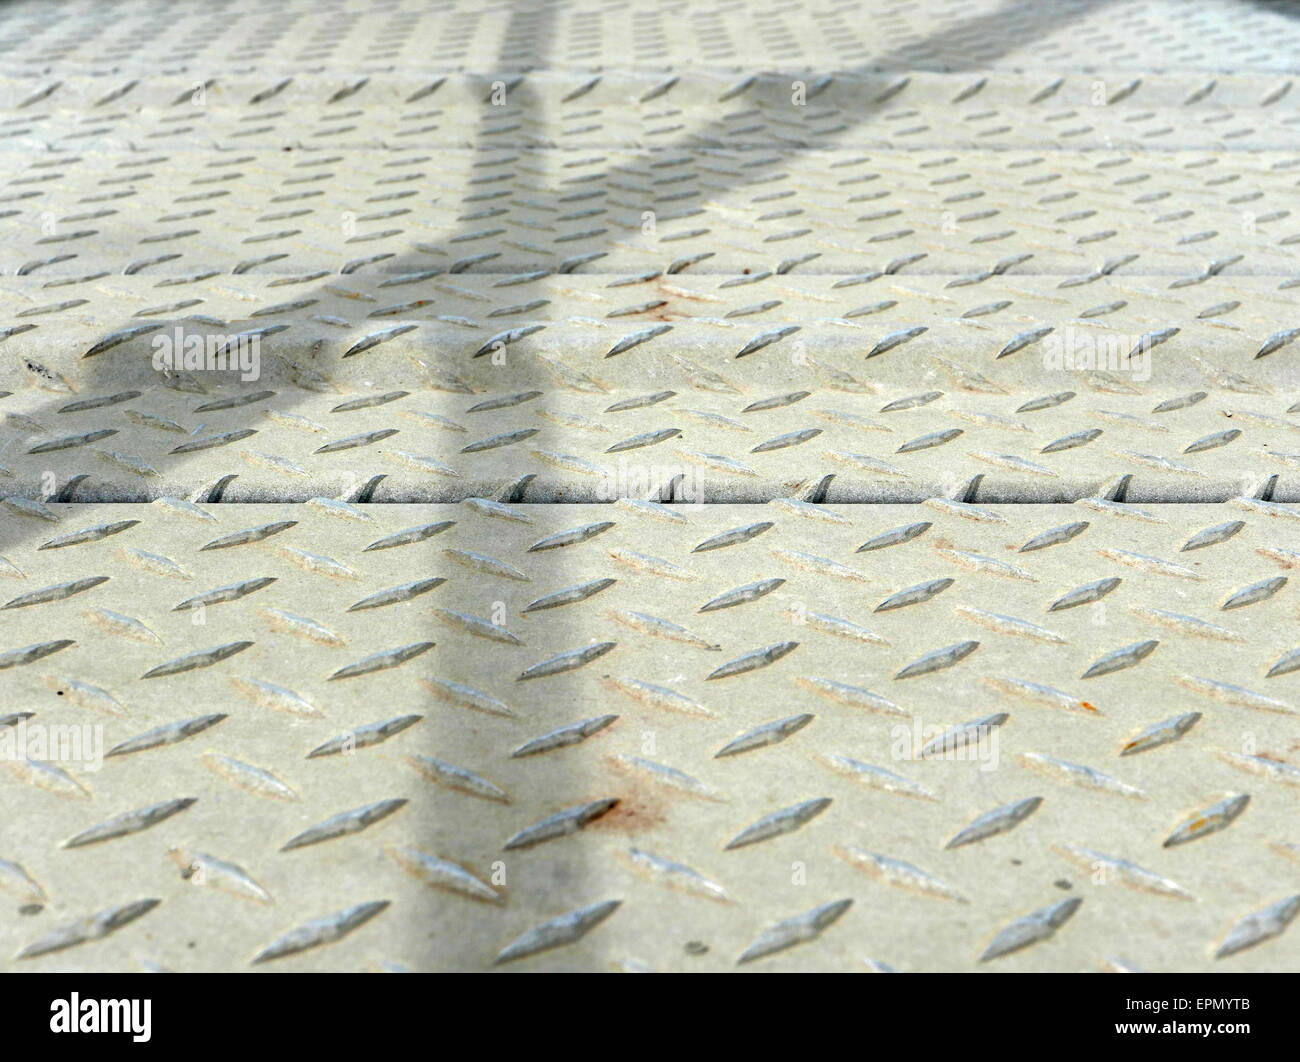 Close view of a steel non-slip walkway with the shadows of the railings. - Stock Image